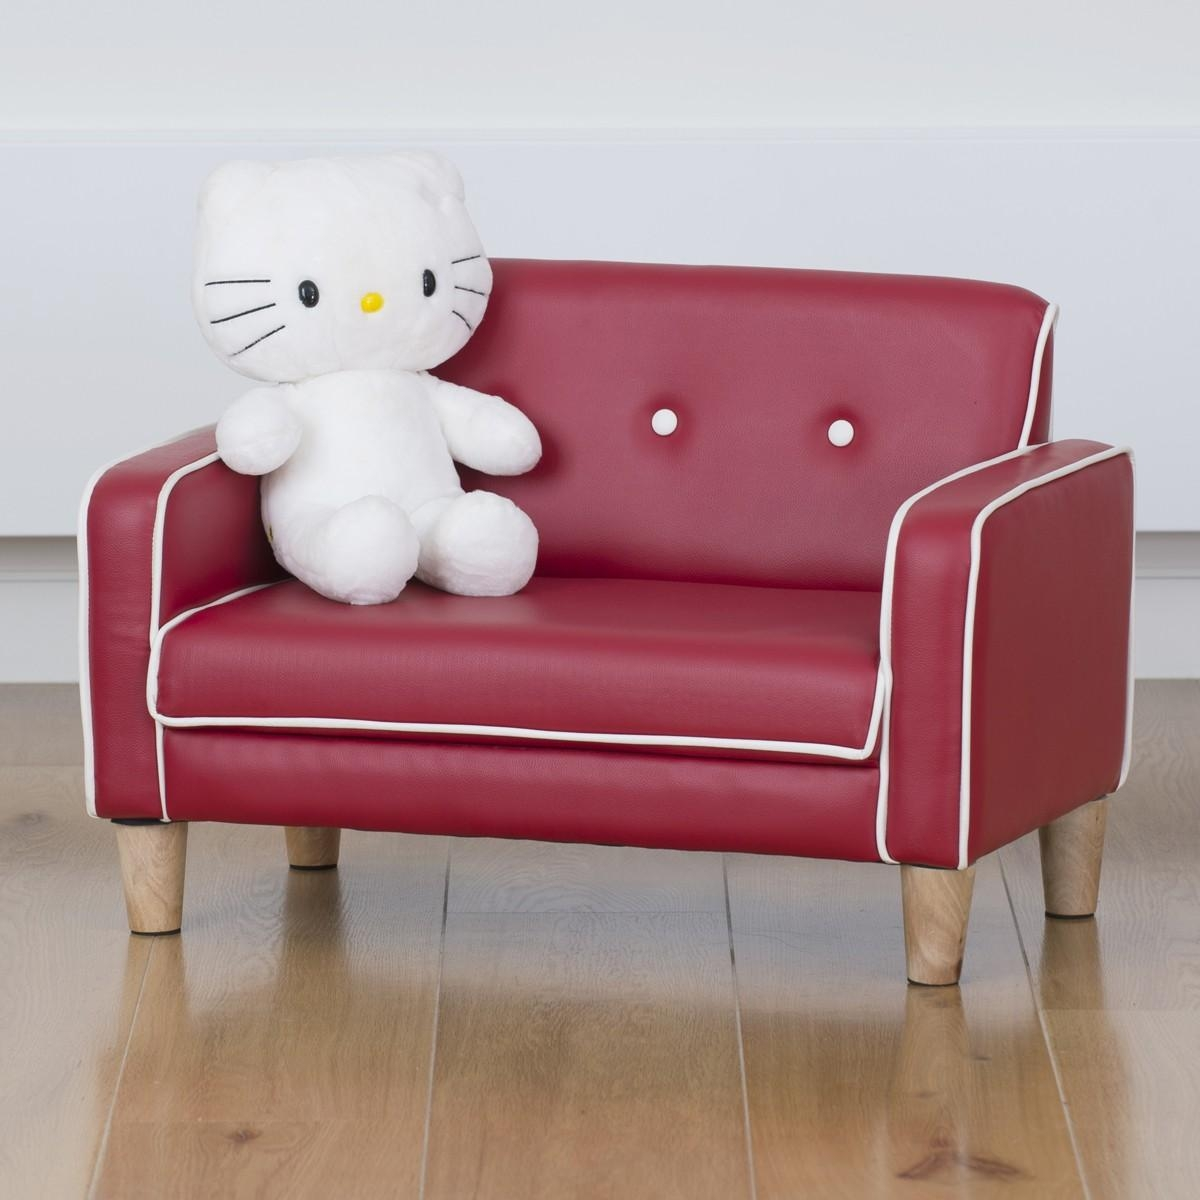 Sofas Center : Canada Children Sofa Chair For Kid Best Decoration Throughout Childrens Sofa Chairs (Image 14 of 20)